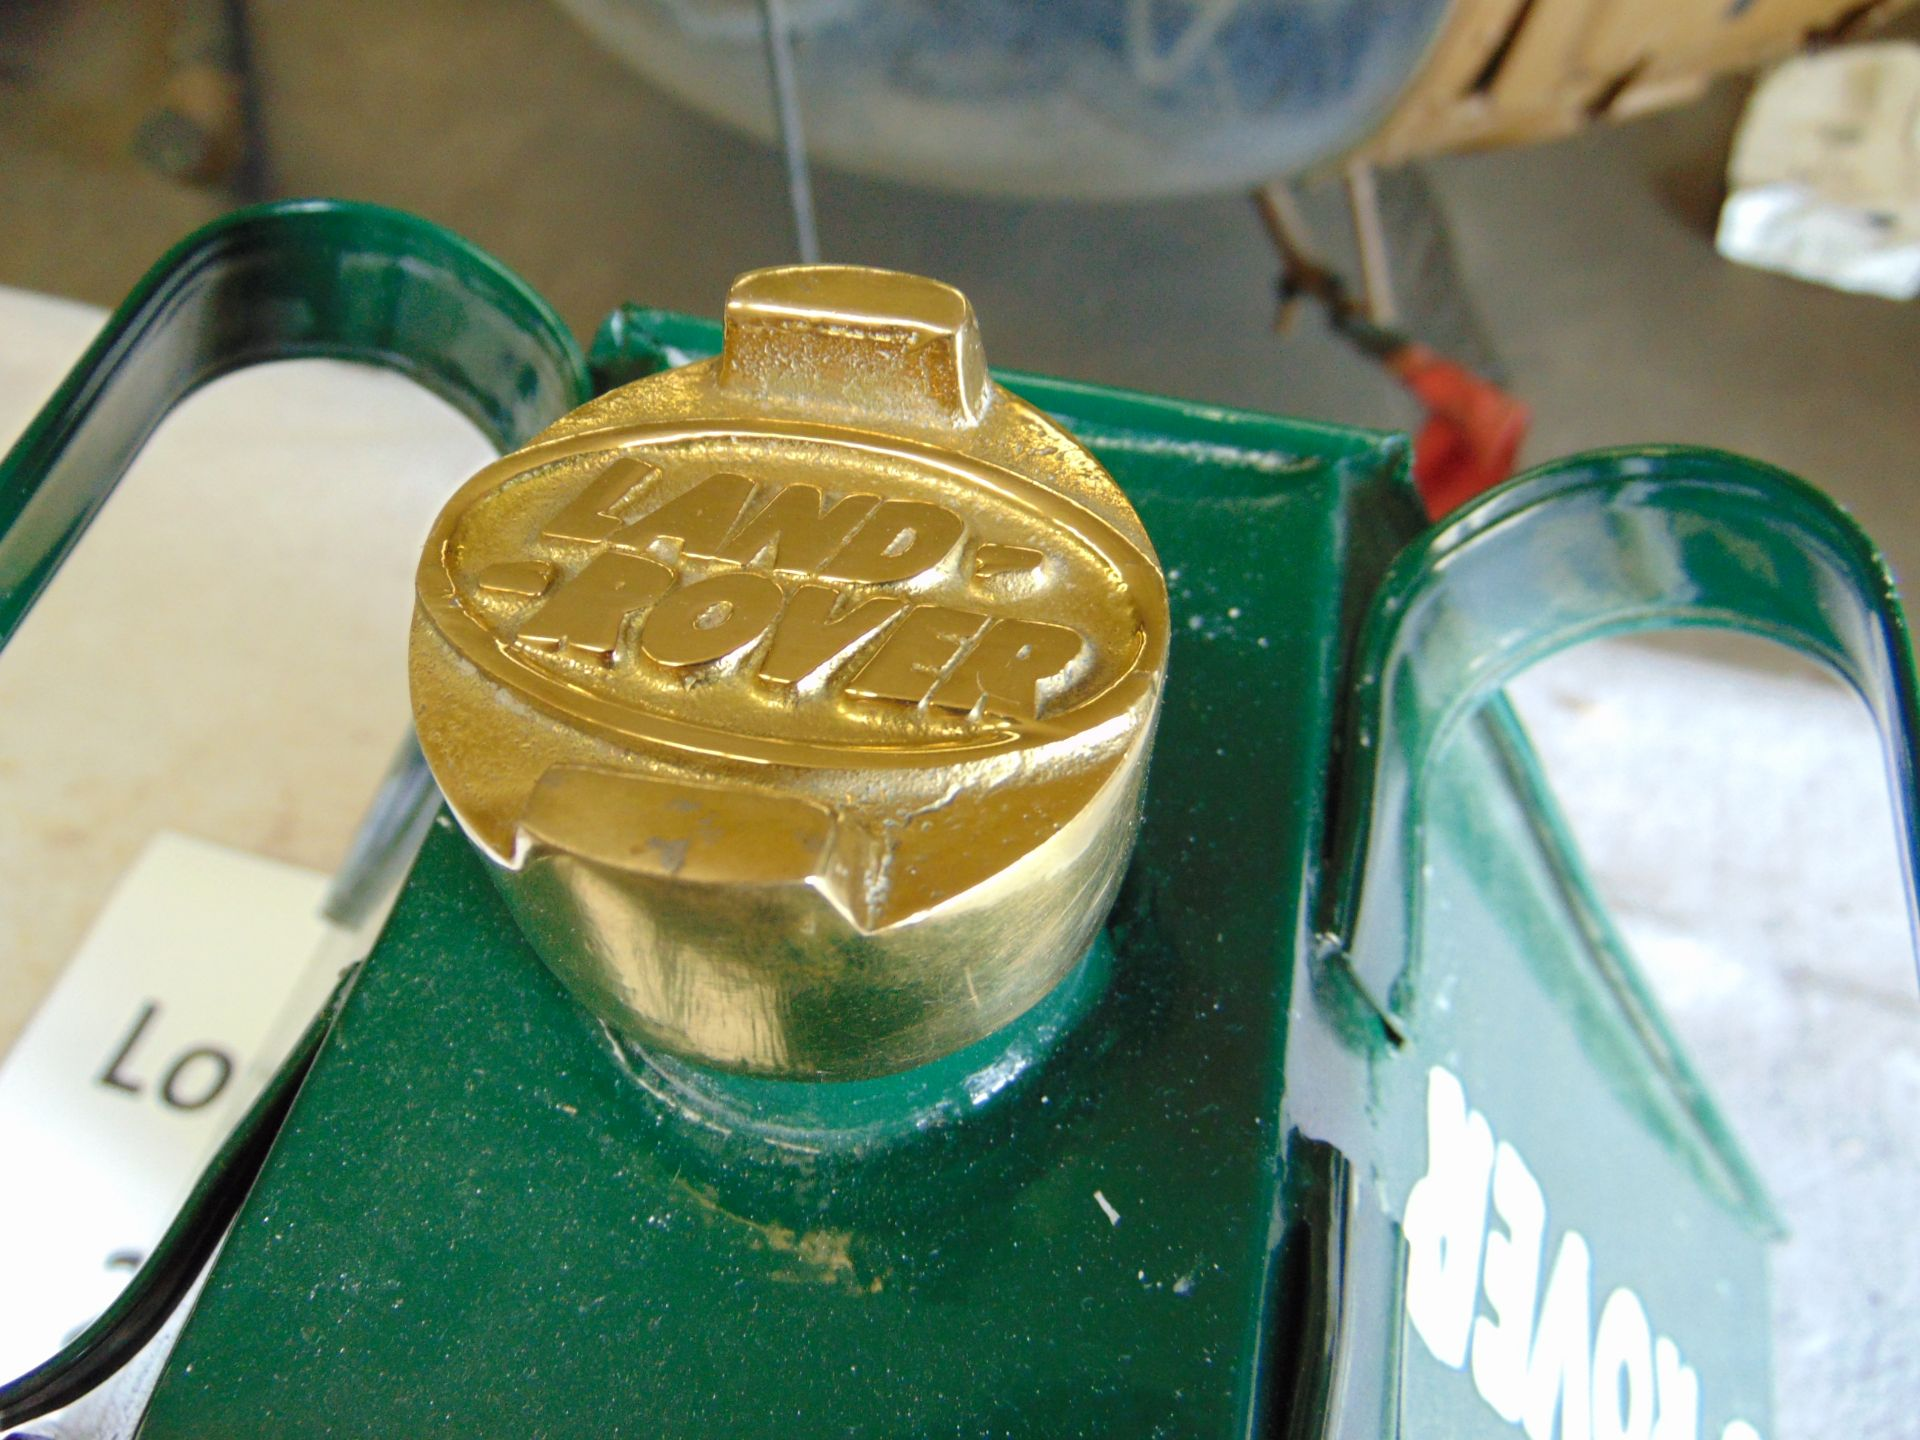 Lot 279 - Unused Land Rover Fuel/Oil Can with brass screw cap